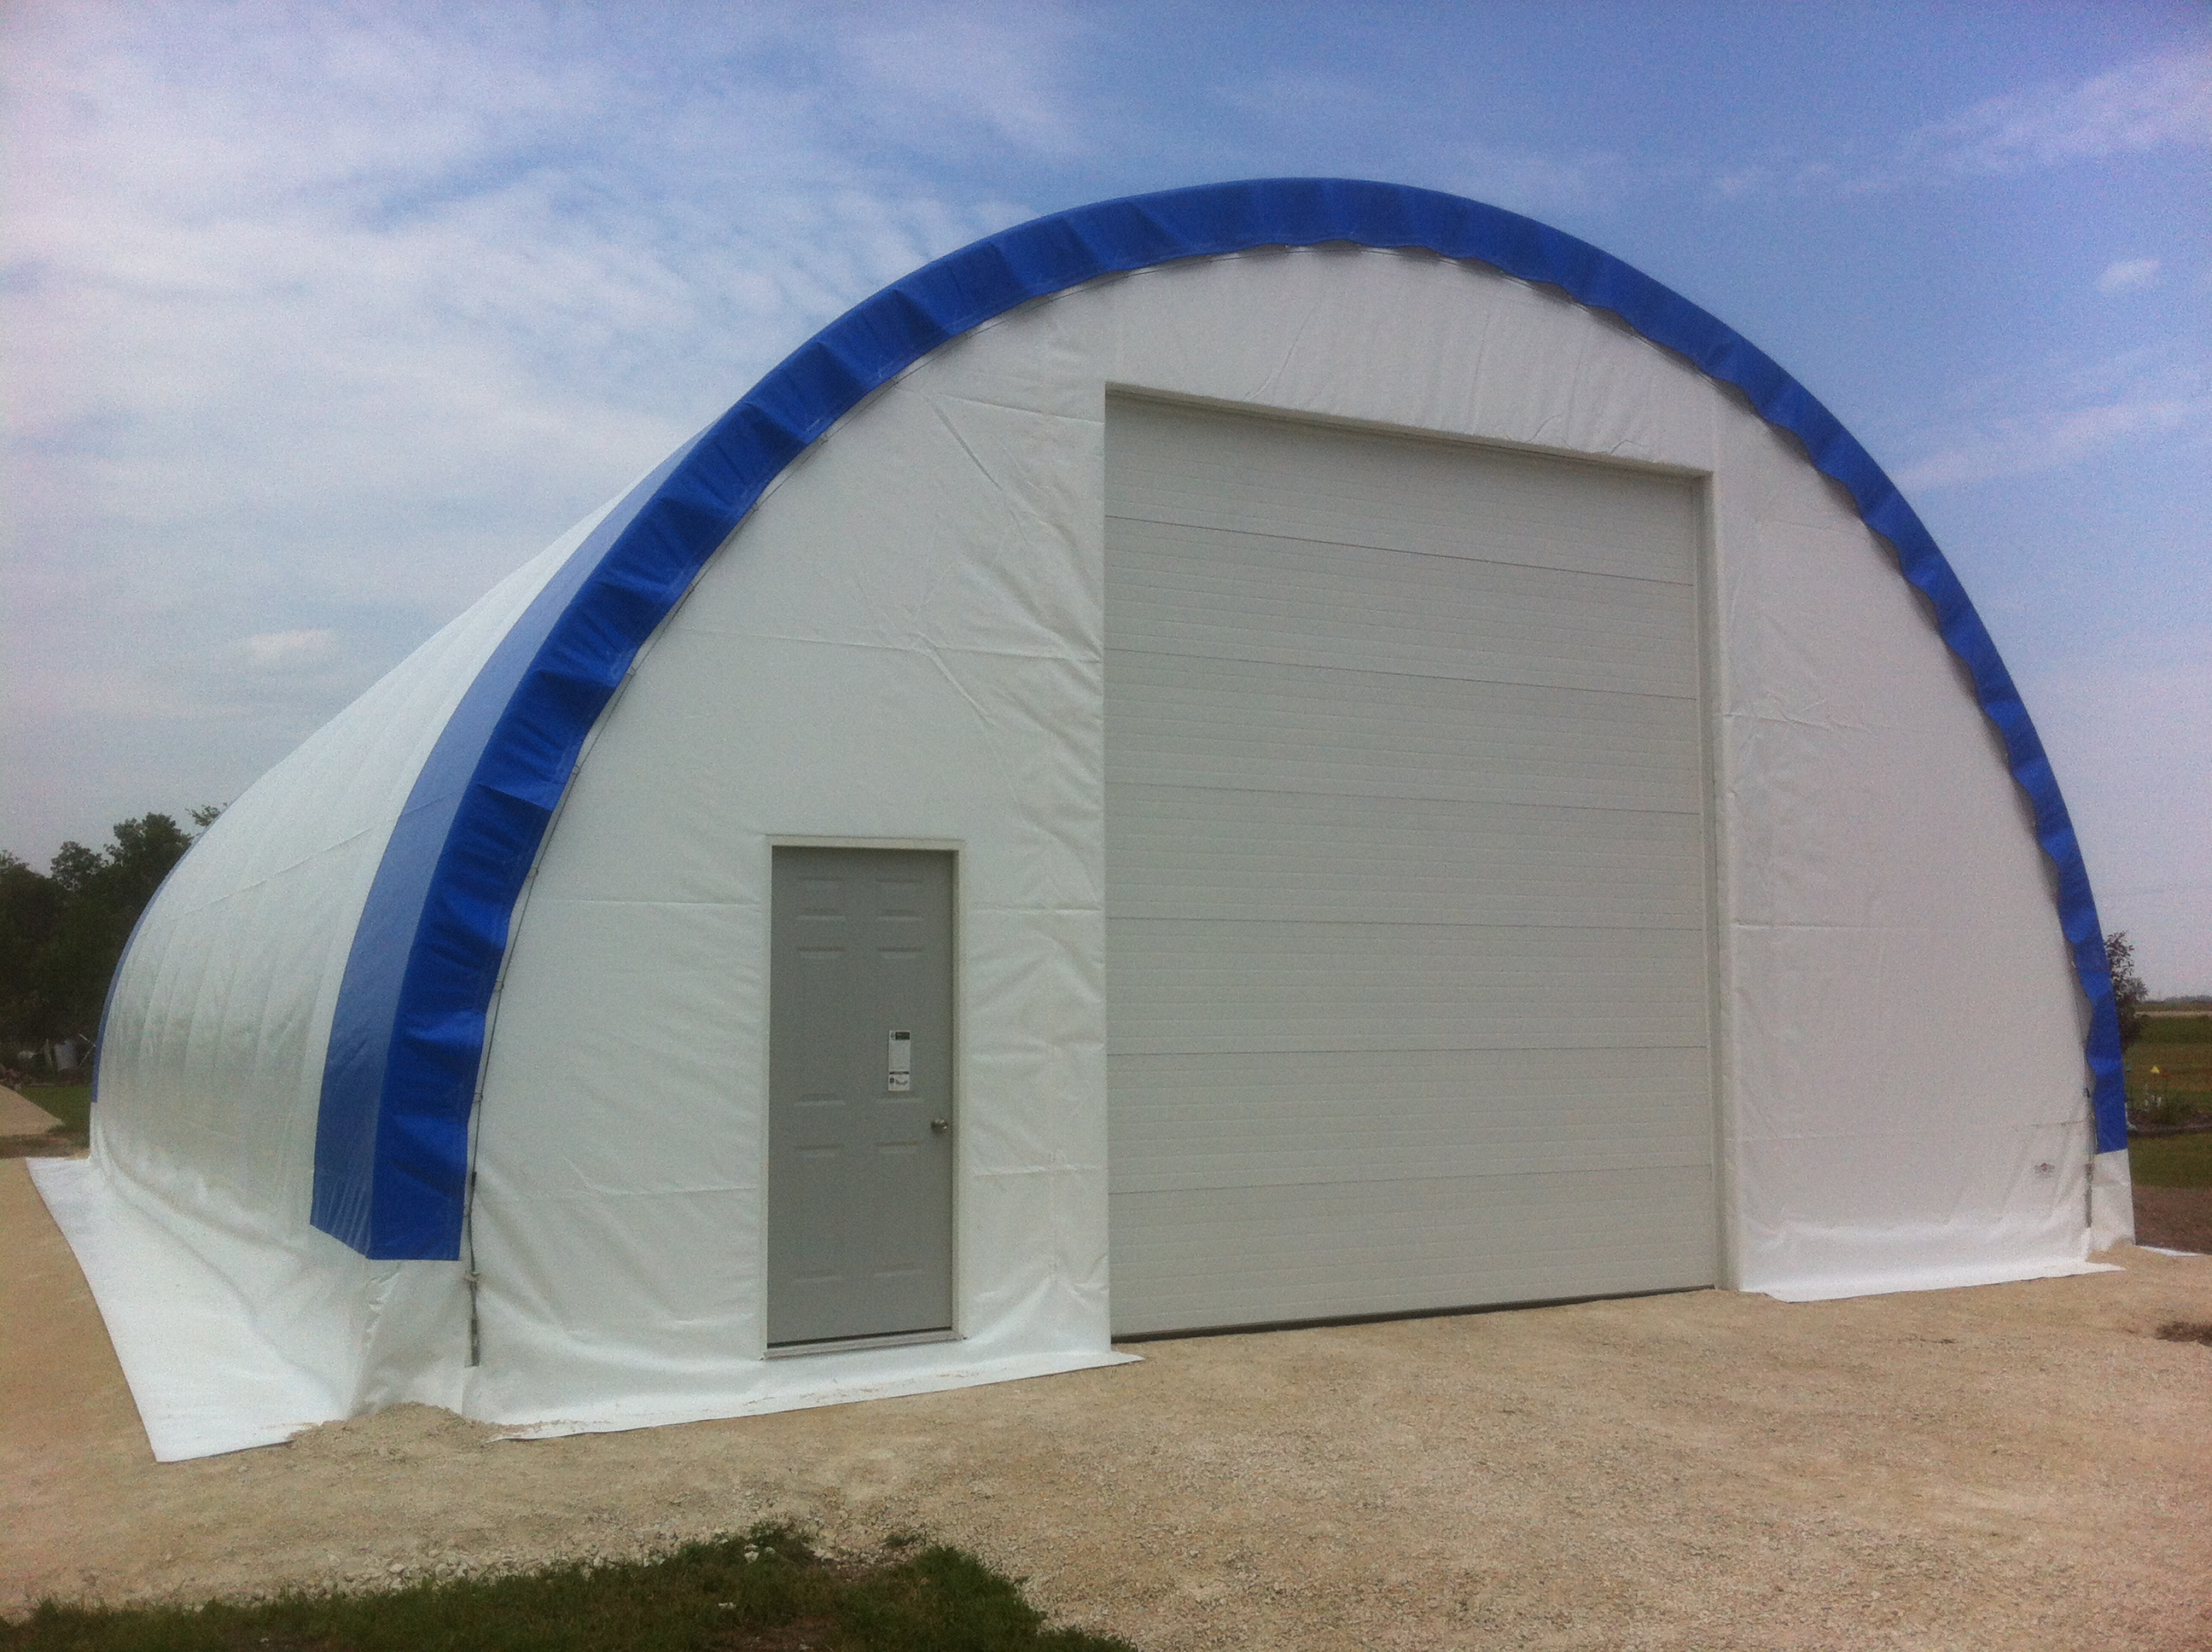 Portable Dome Shelters : Home envirodome and shelters